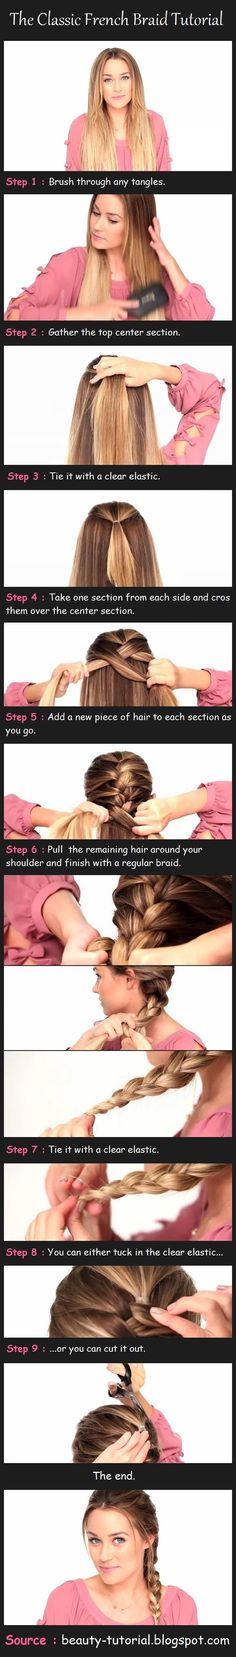 The Classic French Braid Tutorial. If only I had her perfect hair